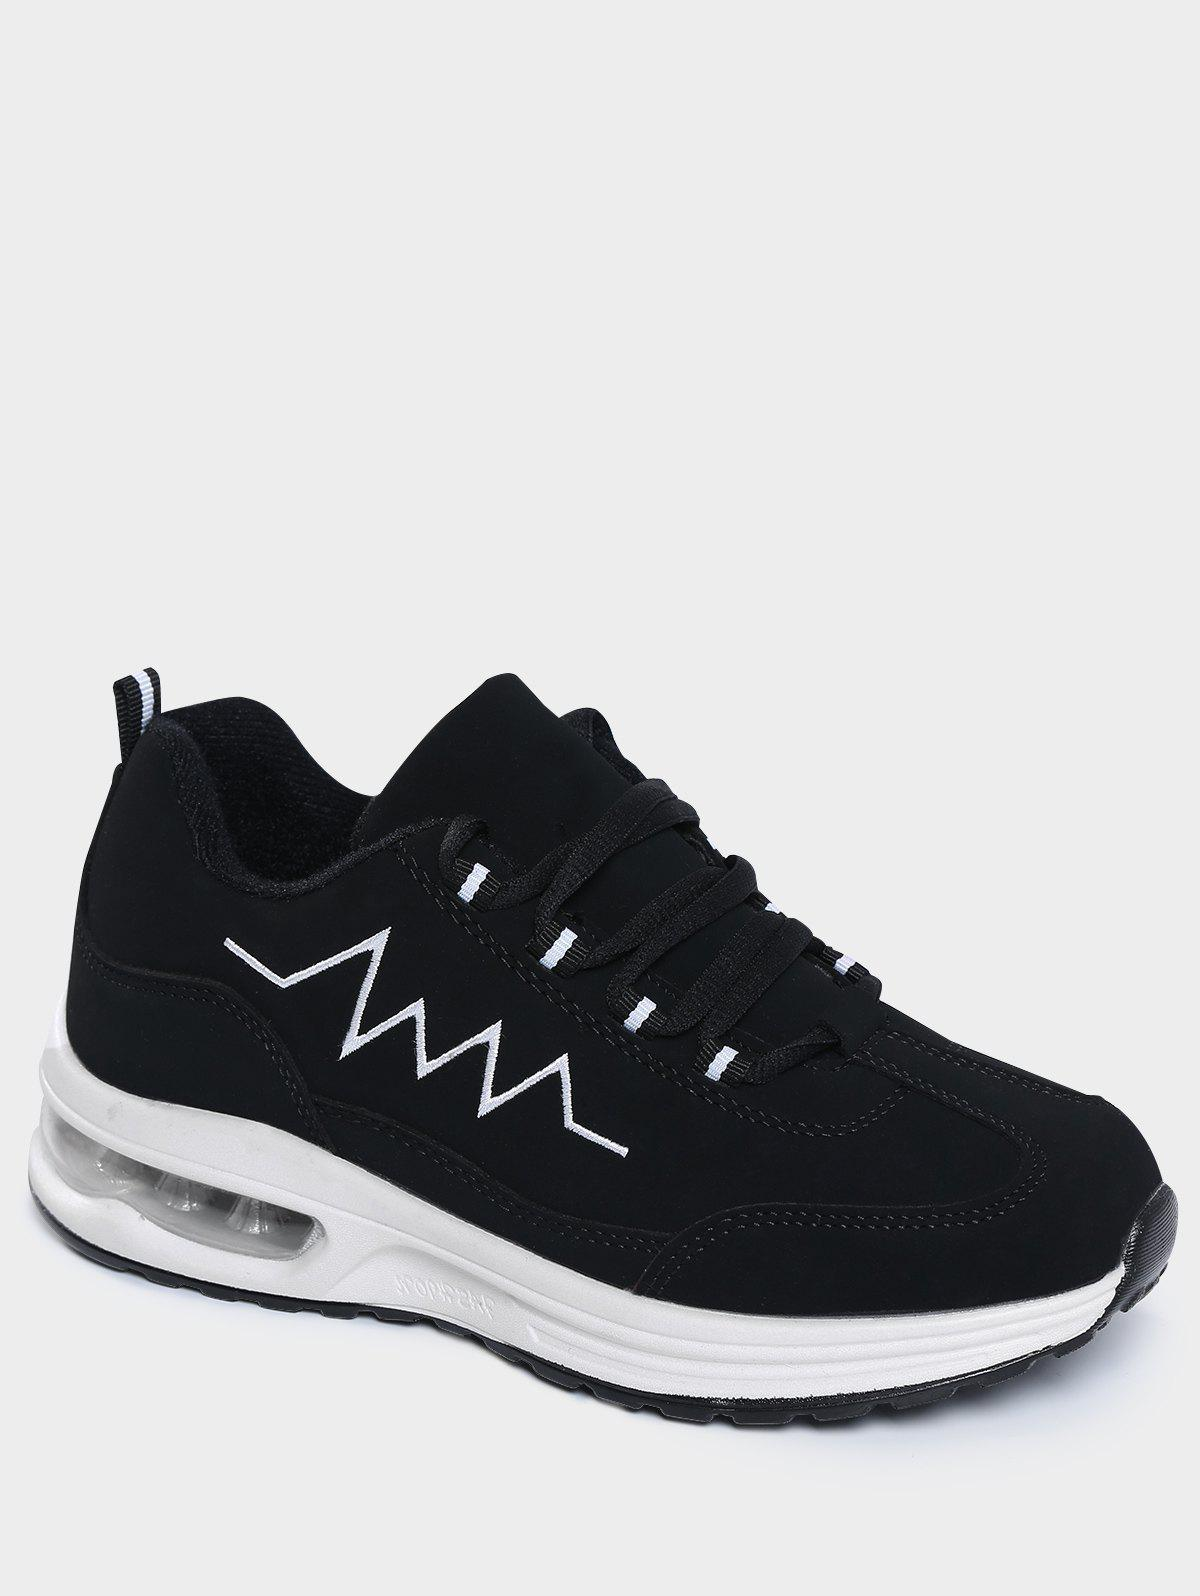 Shops Embroider Line Air Cushion Athletic Shoes